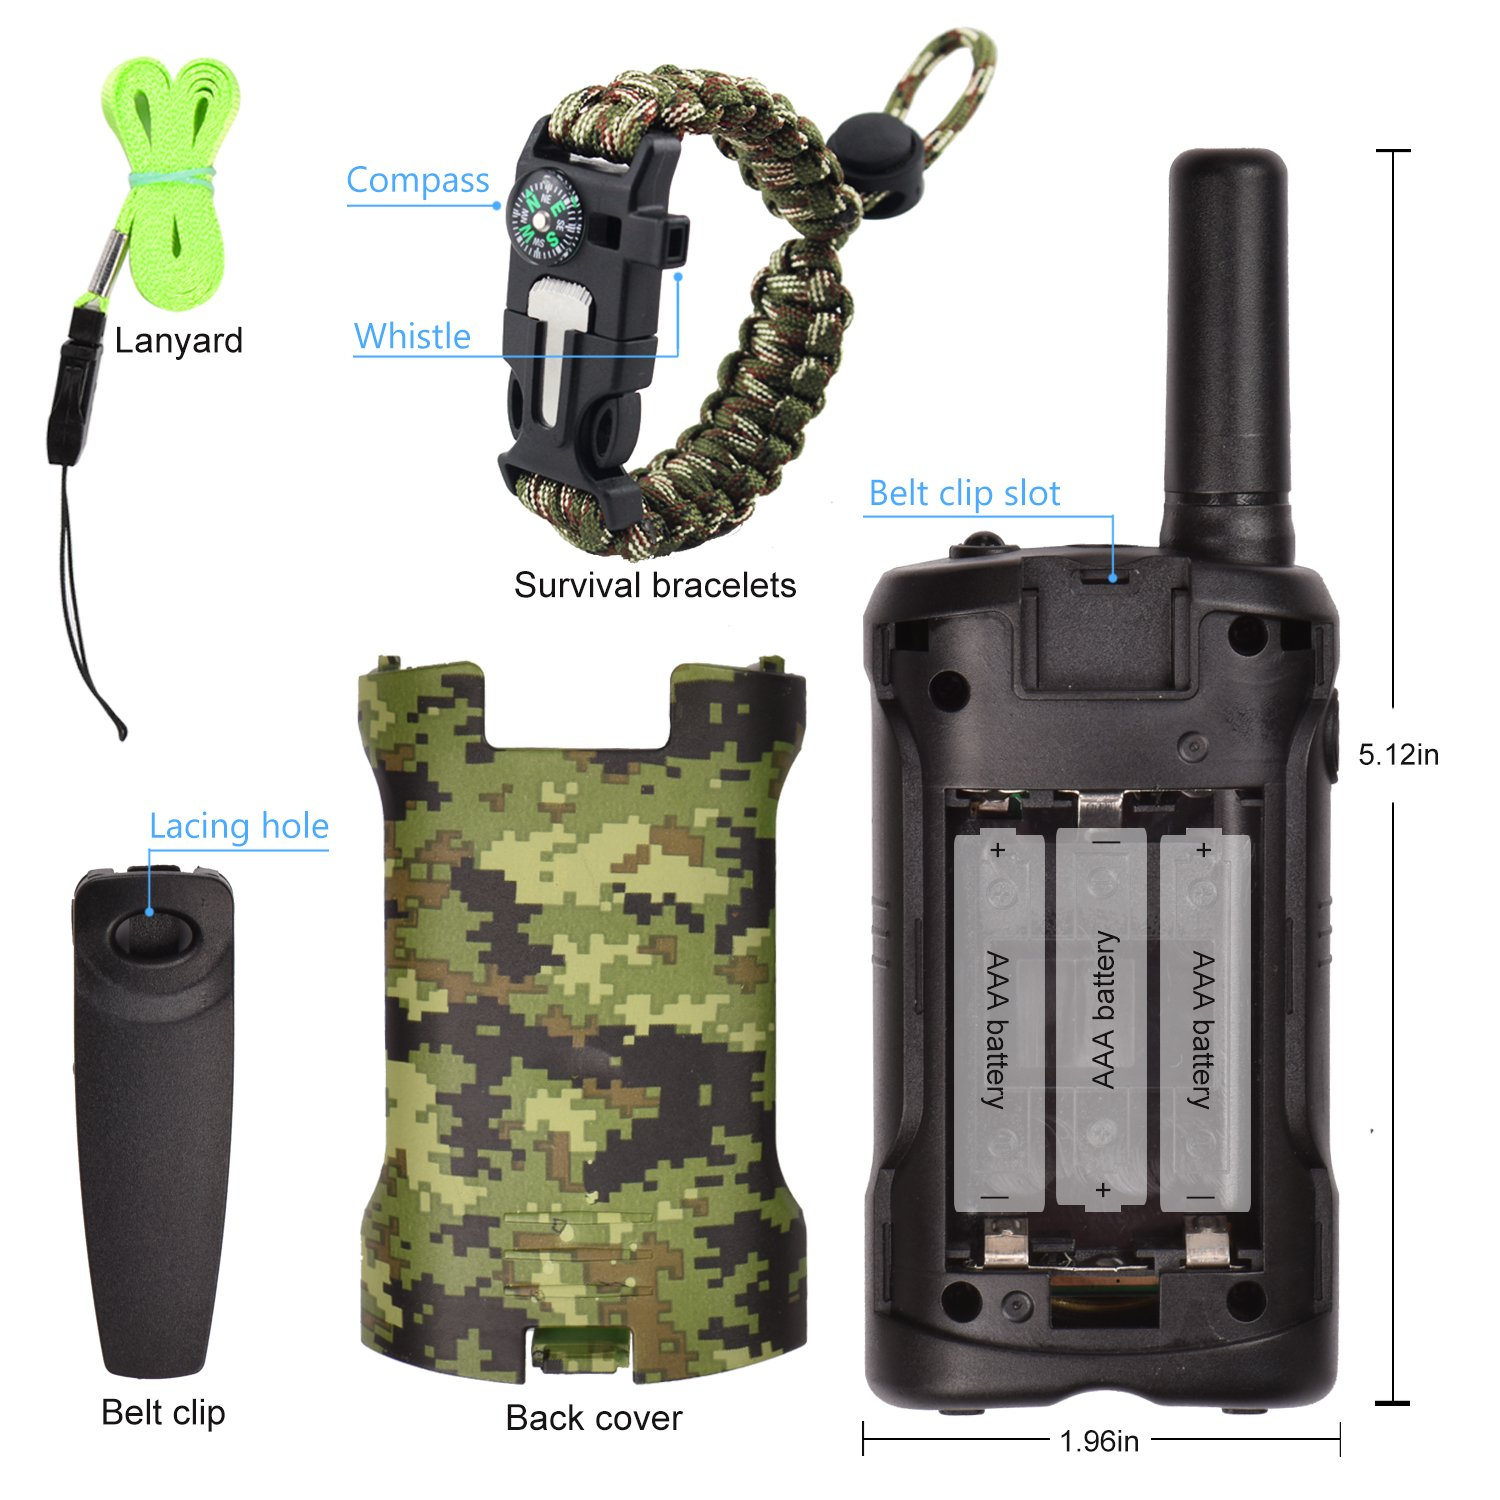 Walkie Talkies for Kids 22 Channel 2 Way Radio 3 Miles Long Range Handheld Walkie Talkies Durable Toy Best Birthday Gifts for 6 year old Boys and Girls fit Outdoor Adventure Game Camping (Green Camo) by Aikmi (Image #5)